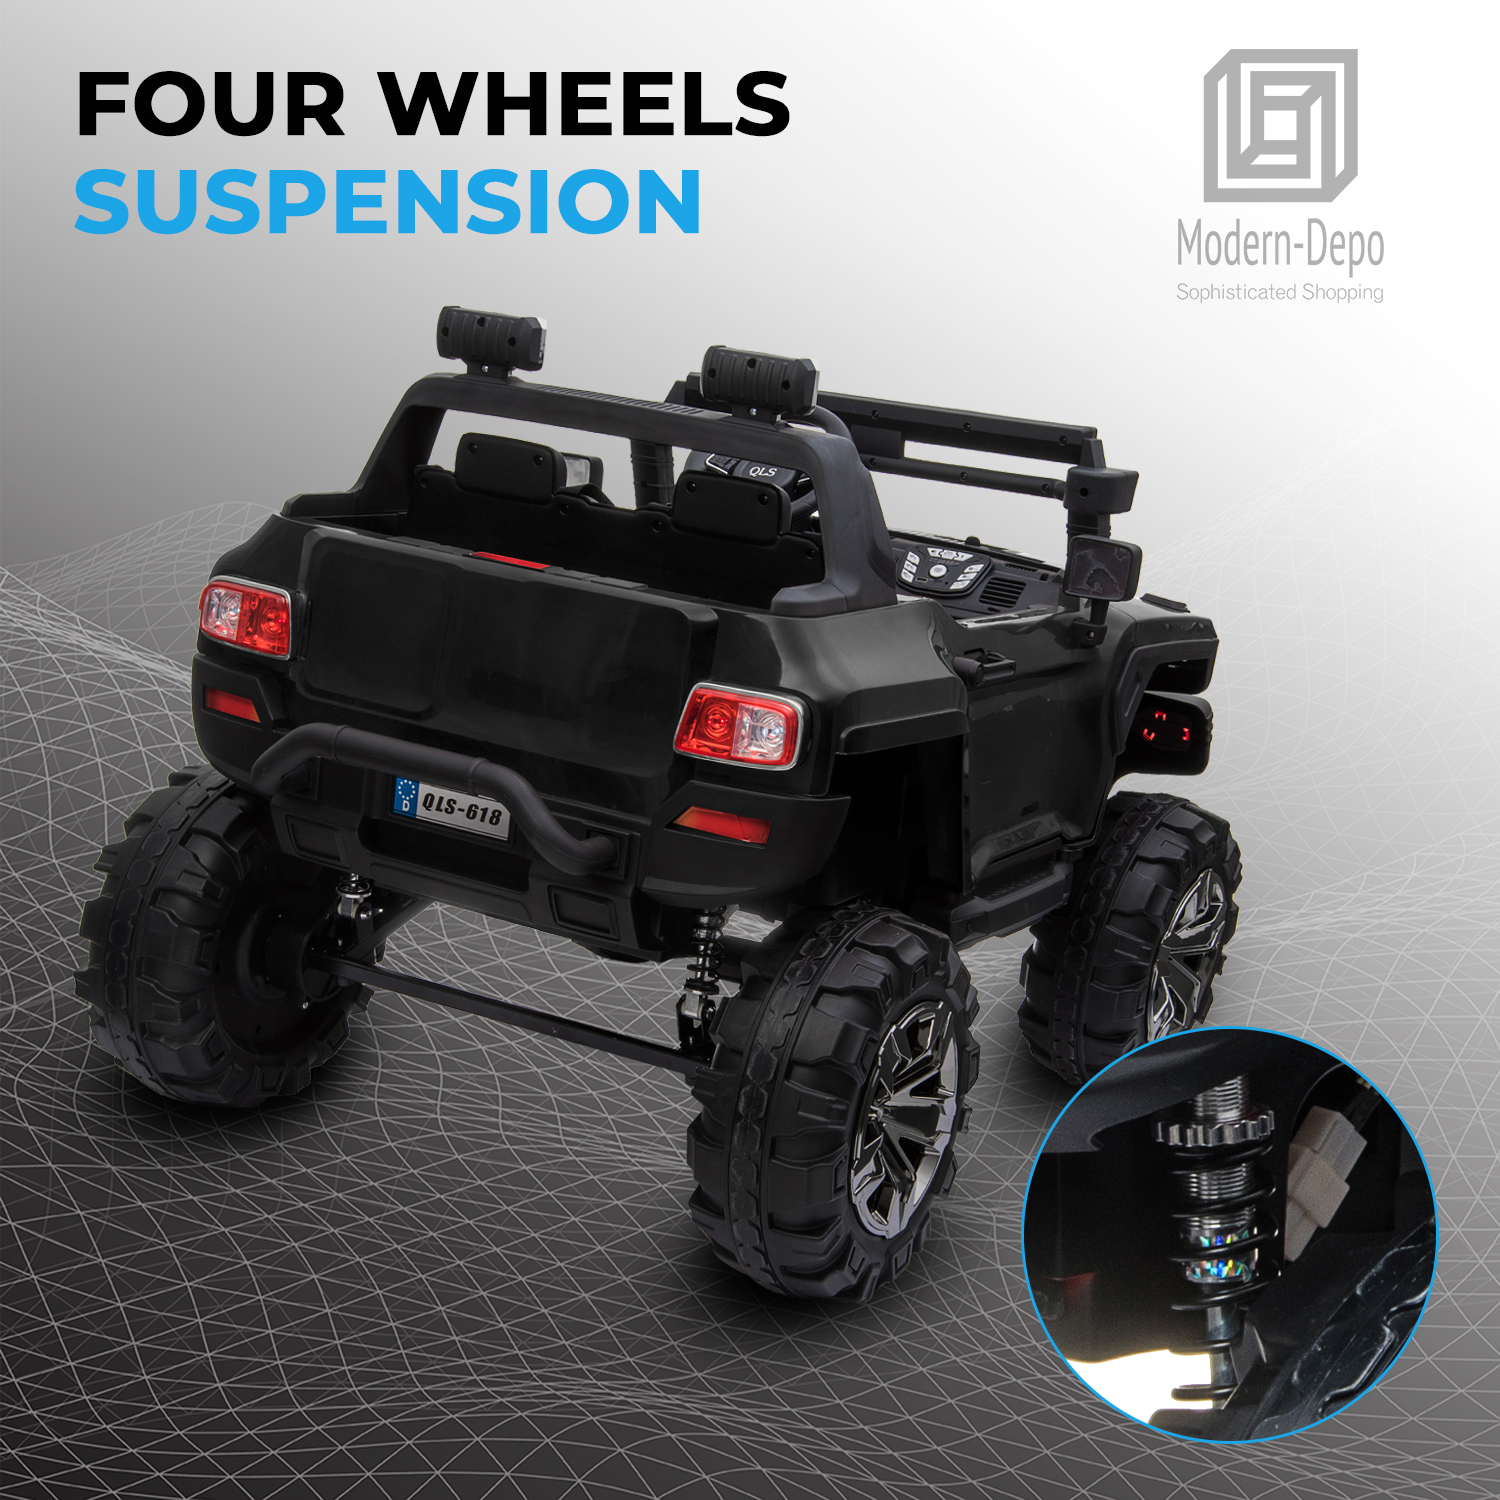 2-Seaters-4-4-Off-Road-Electric-12V-Ride-on-Car-with-Remote-Control miniature 15